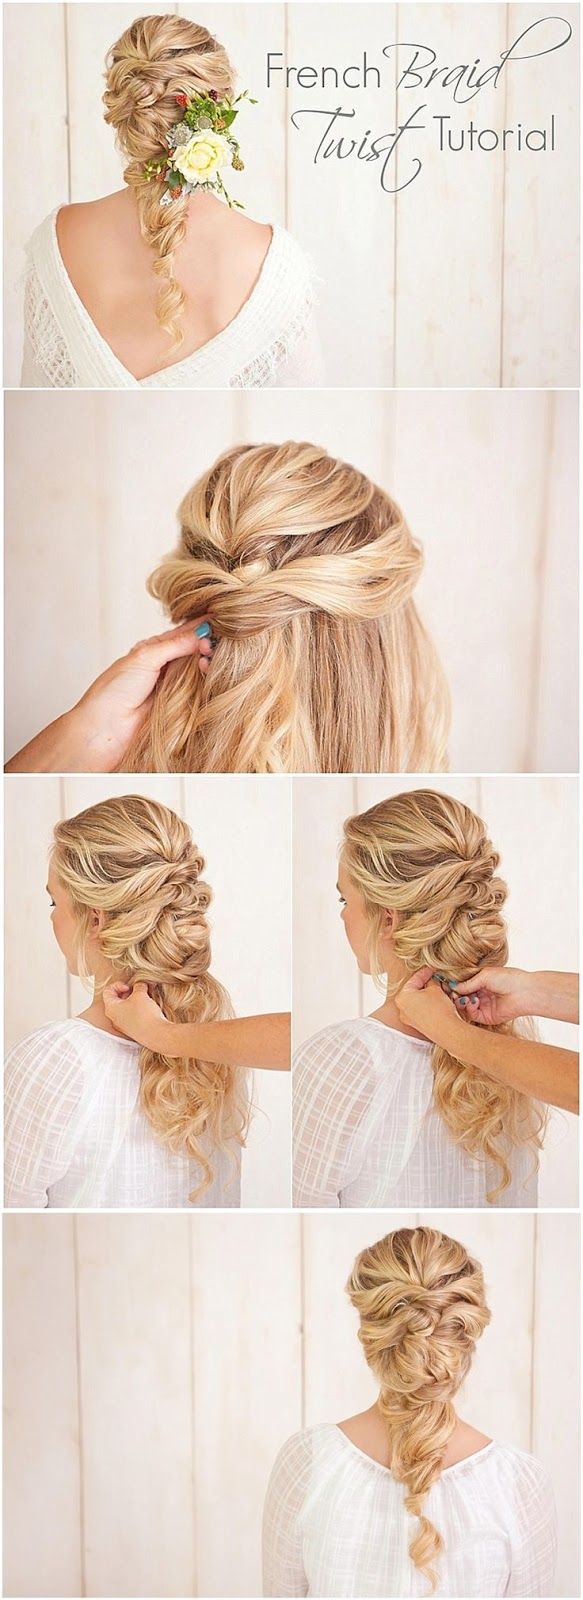 FRENCH BRAID TWISTED TOTORIAL